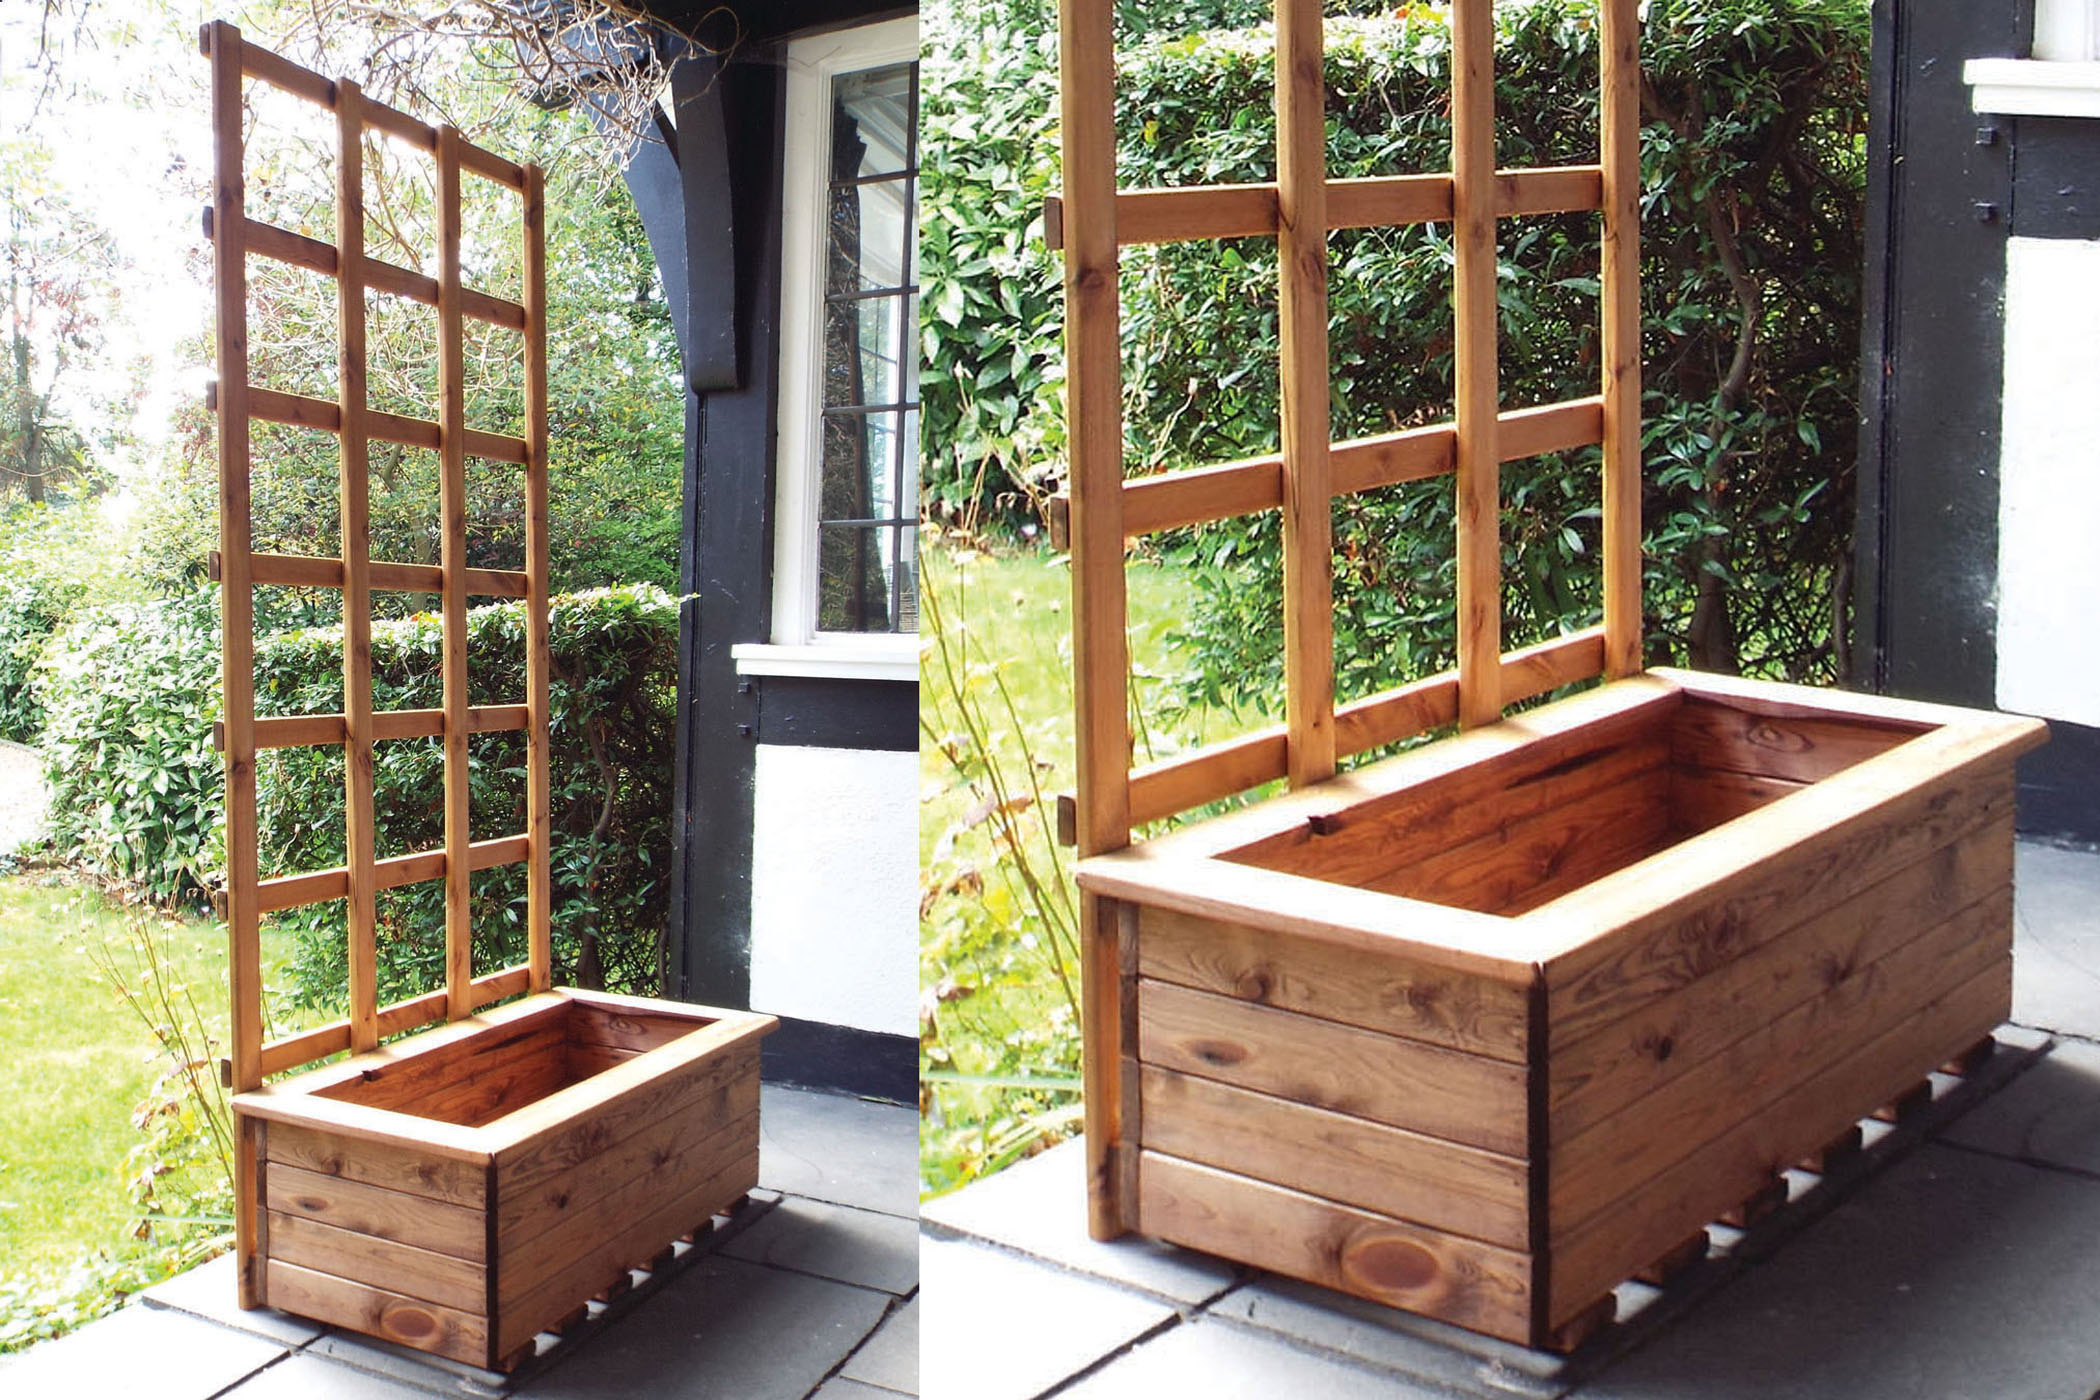 Bbq Islands For Sale >> Trough Planter | Wooden Trellis | Trellis Planter Online